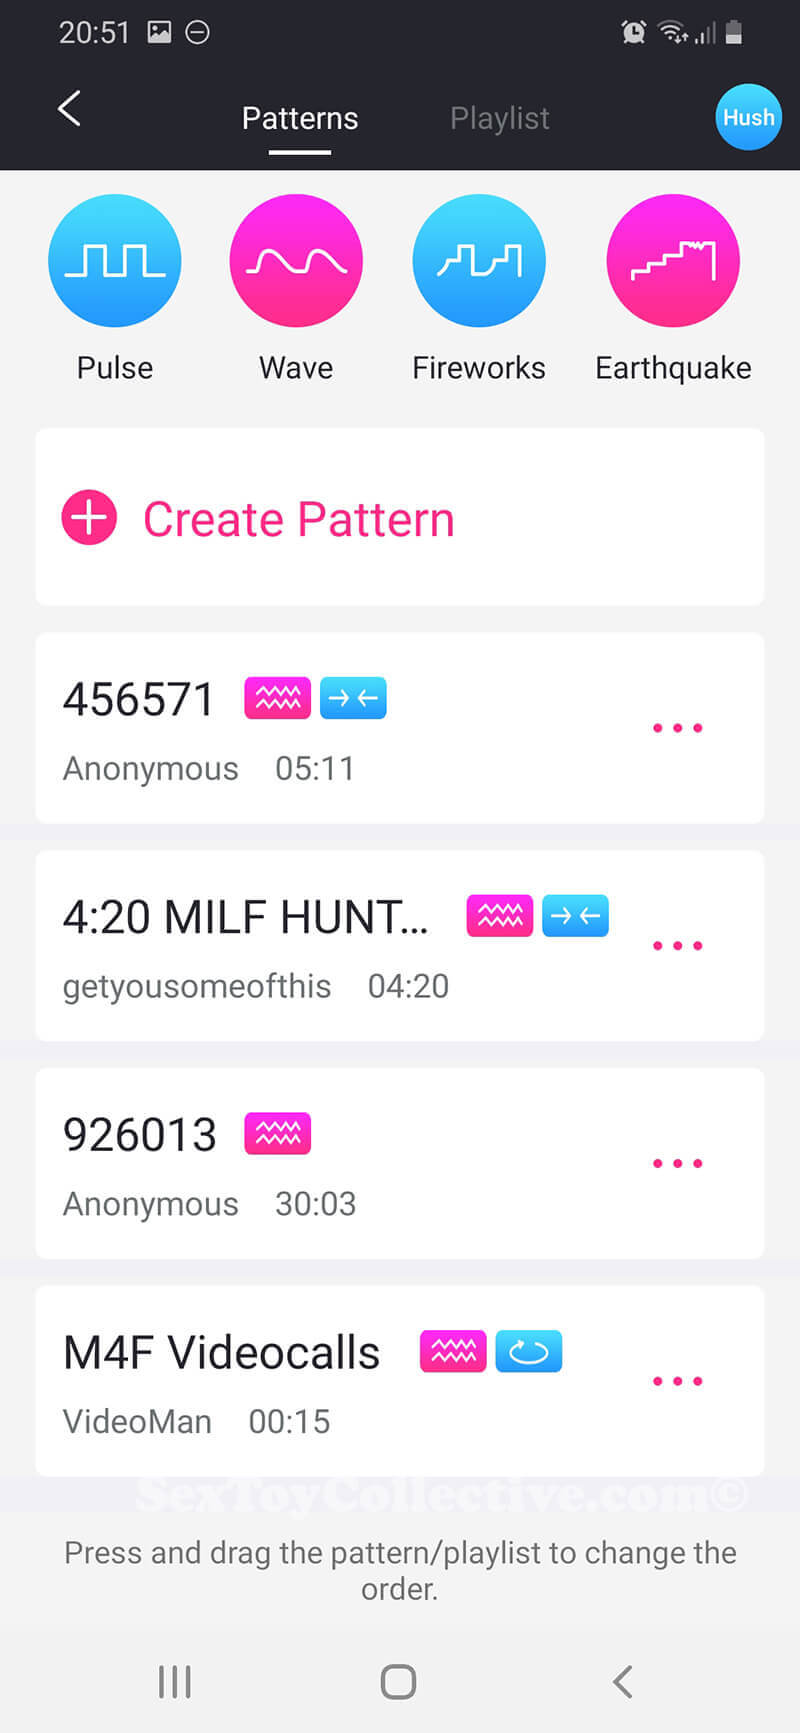 Patterns-Remote-Lovense Remote app